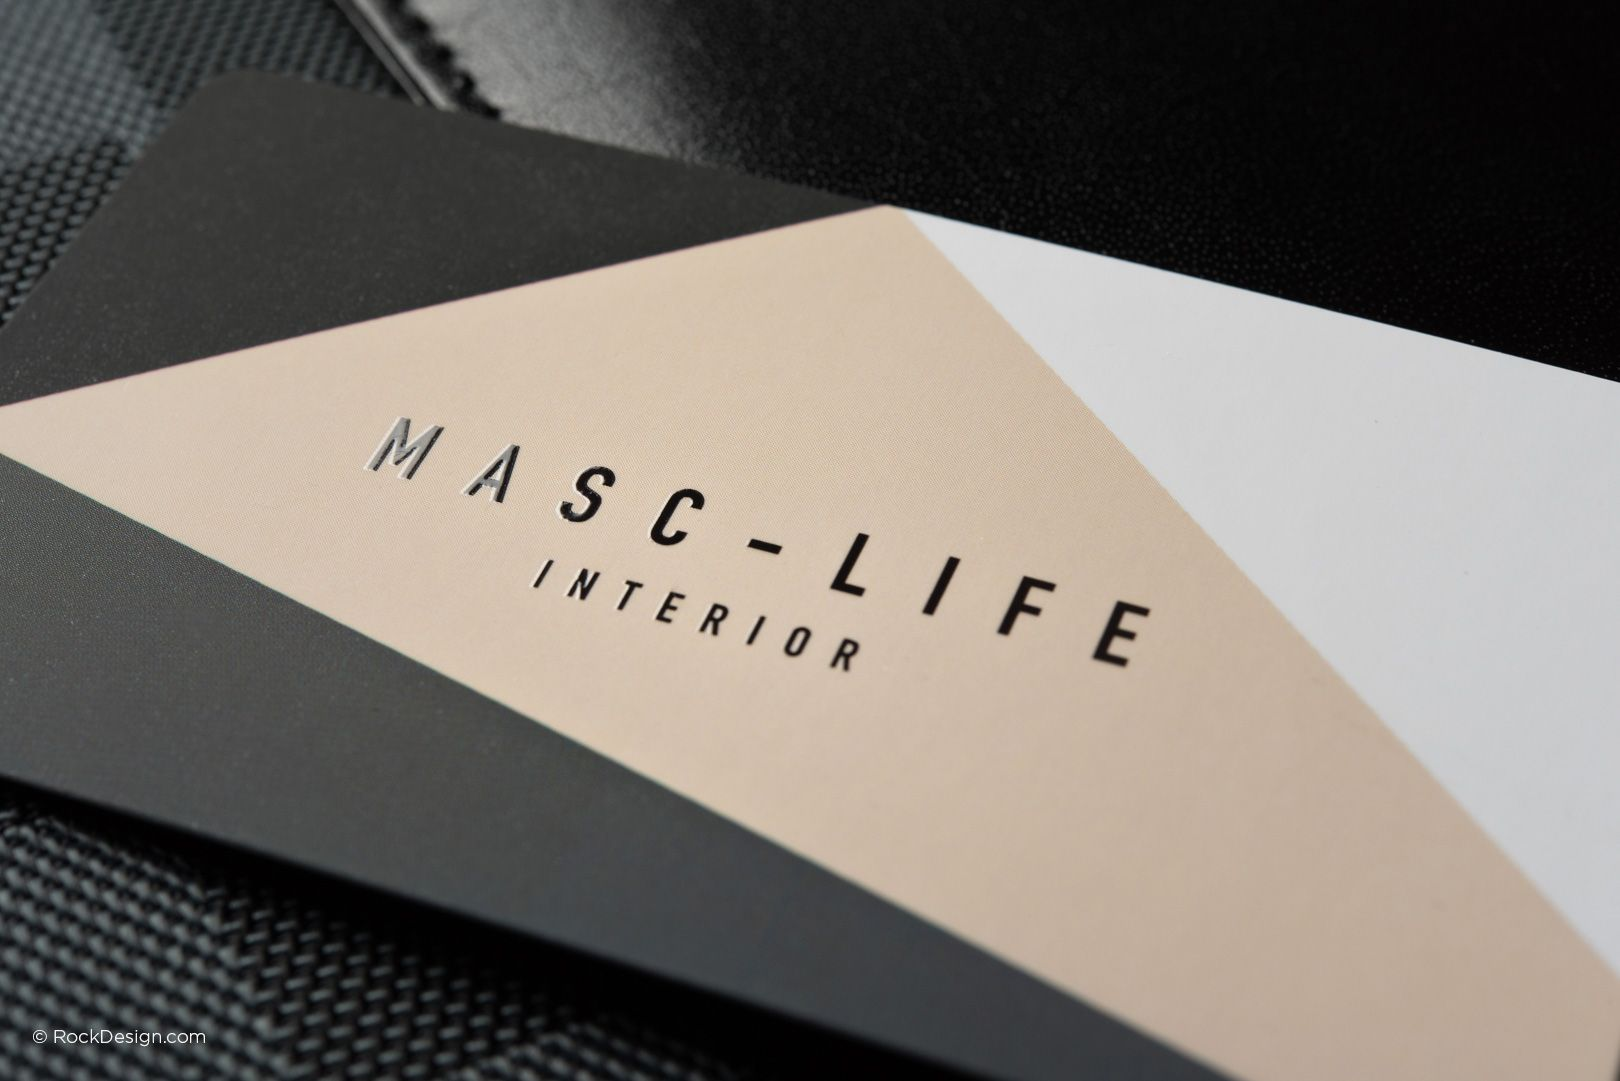 Modern elegant regular suede business card template with spot uv modern elegant regular suede business card template with spot uv masclife rockdesign luxury business wajeb